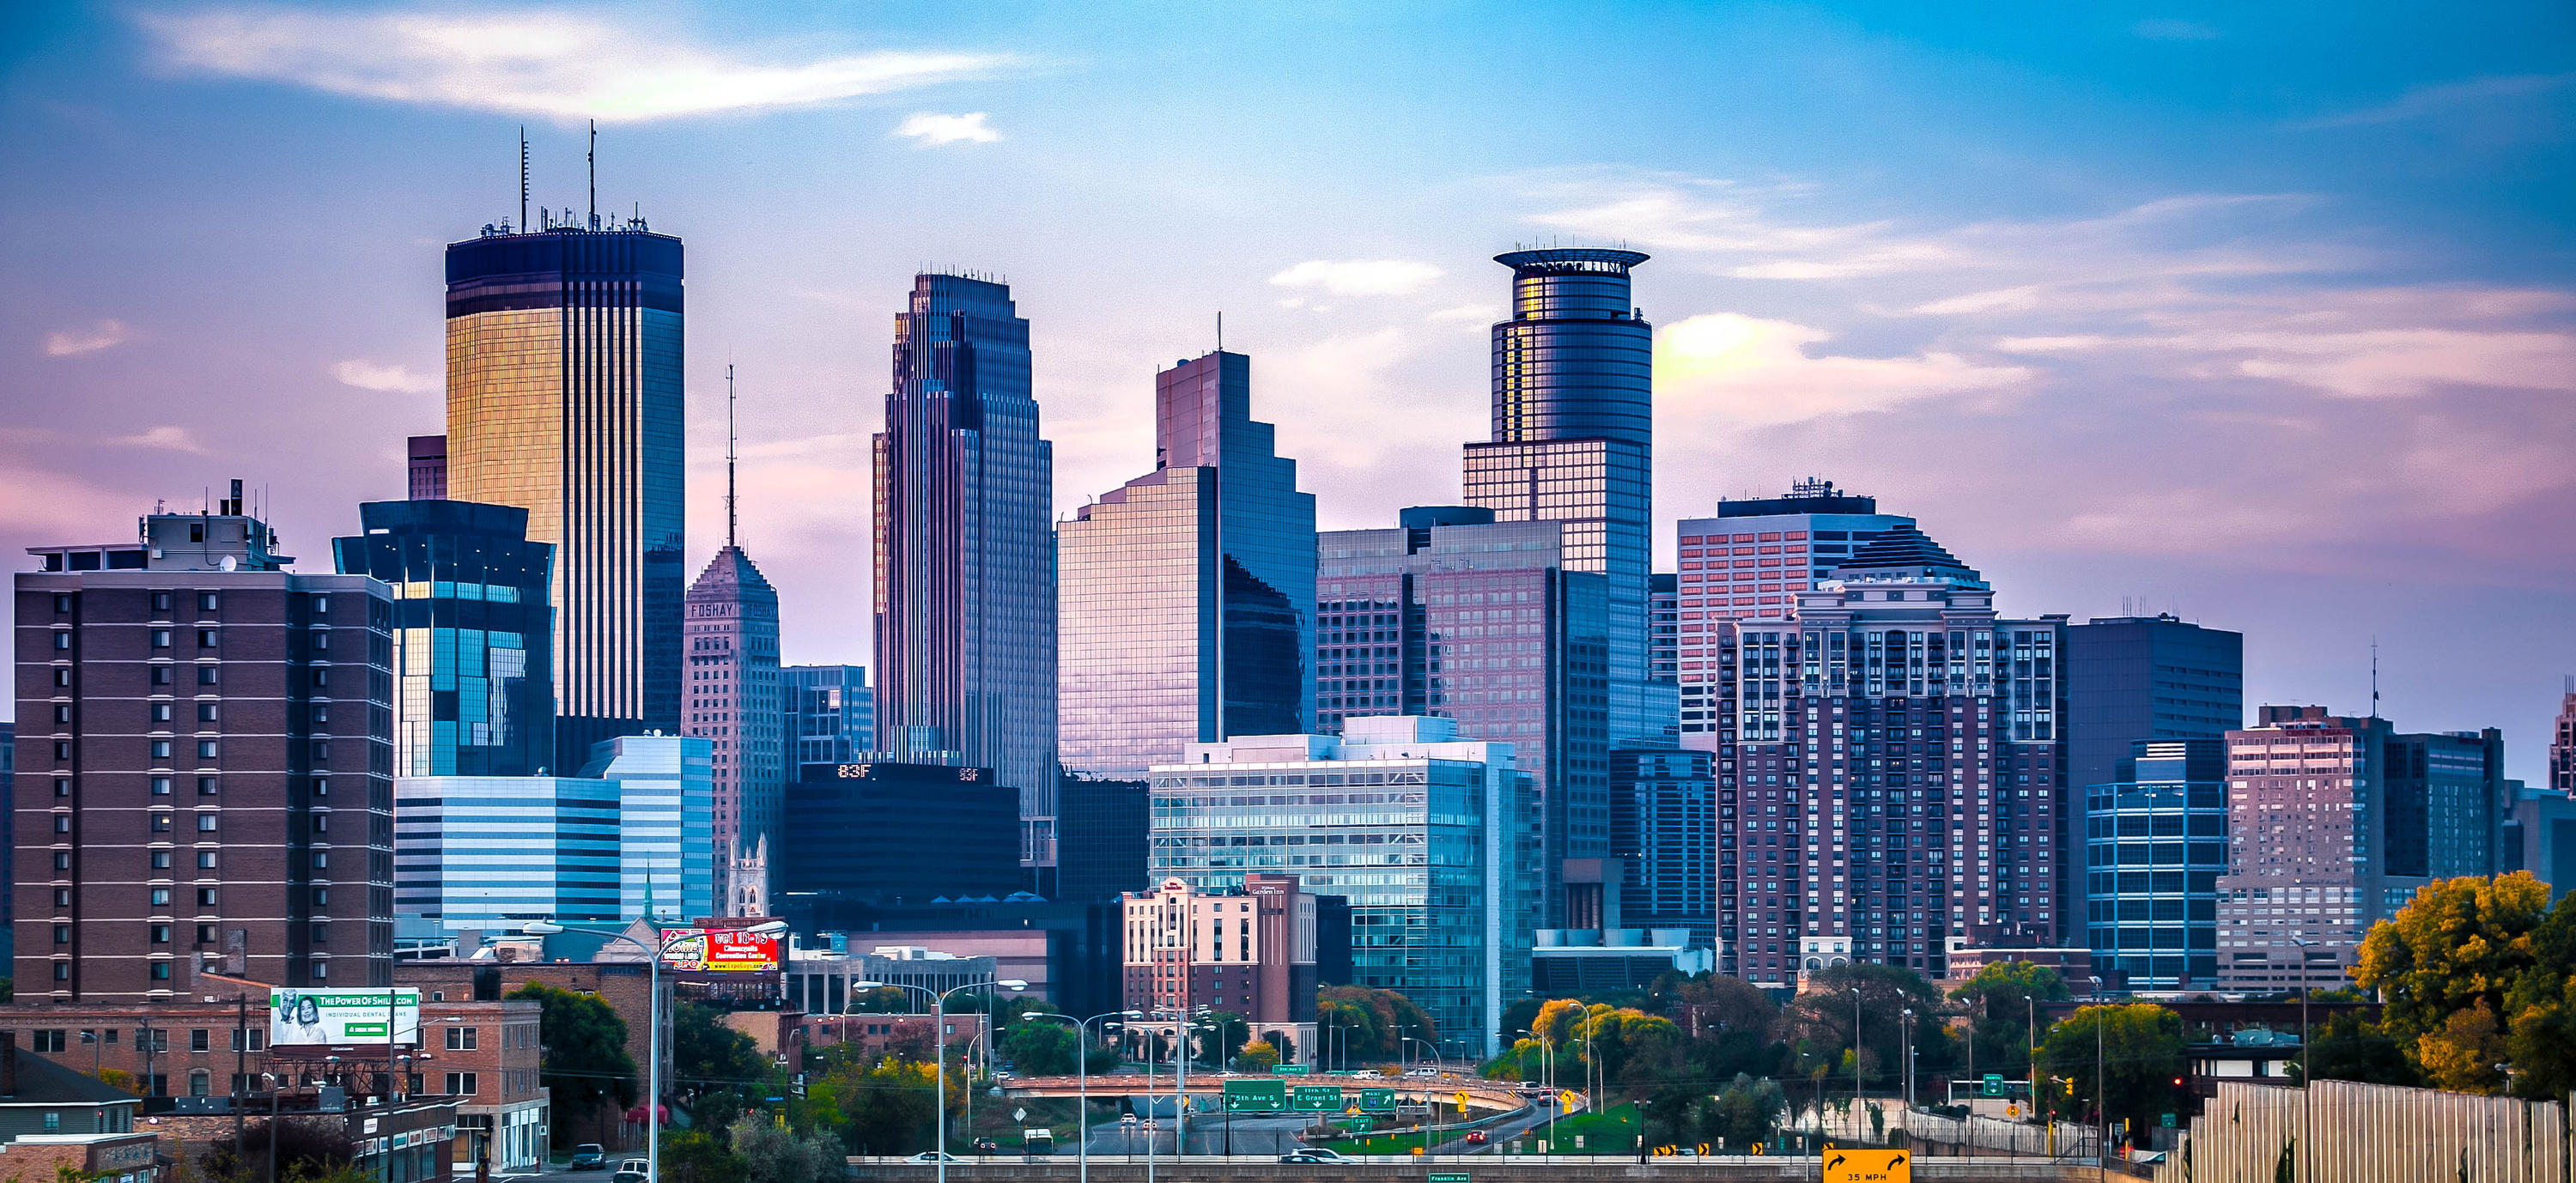 us cities by skyline quiz by cowie123